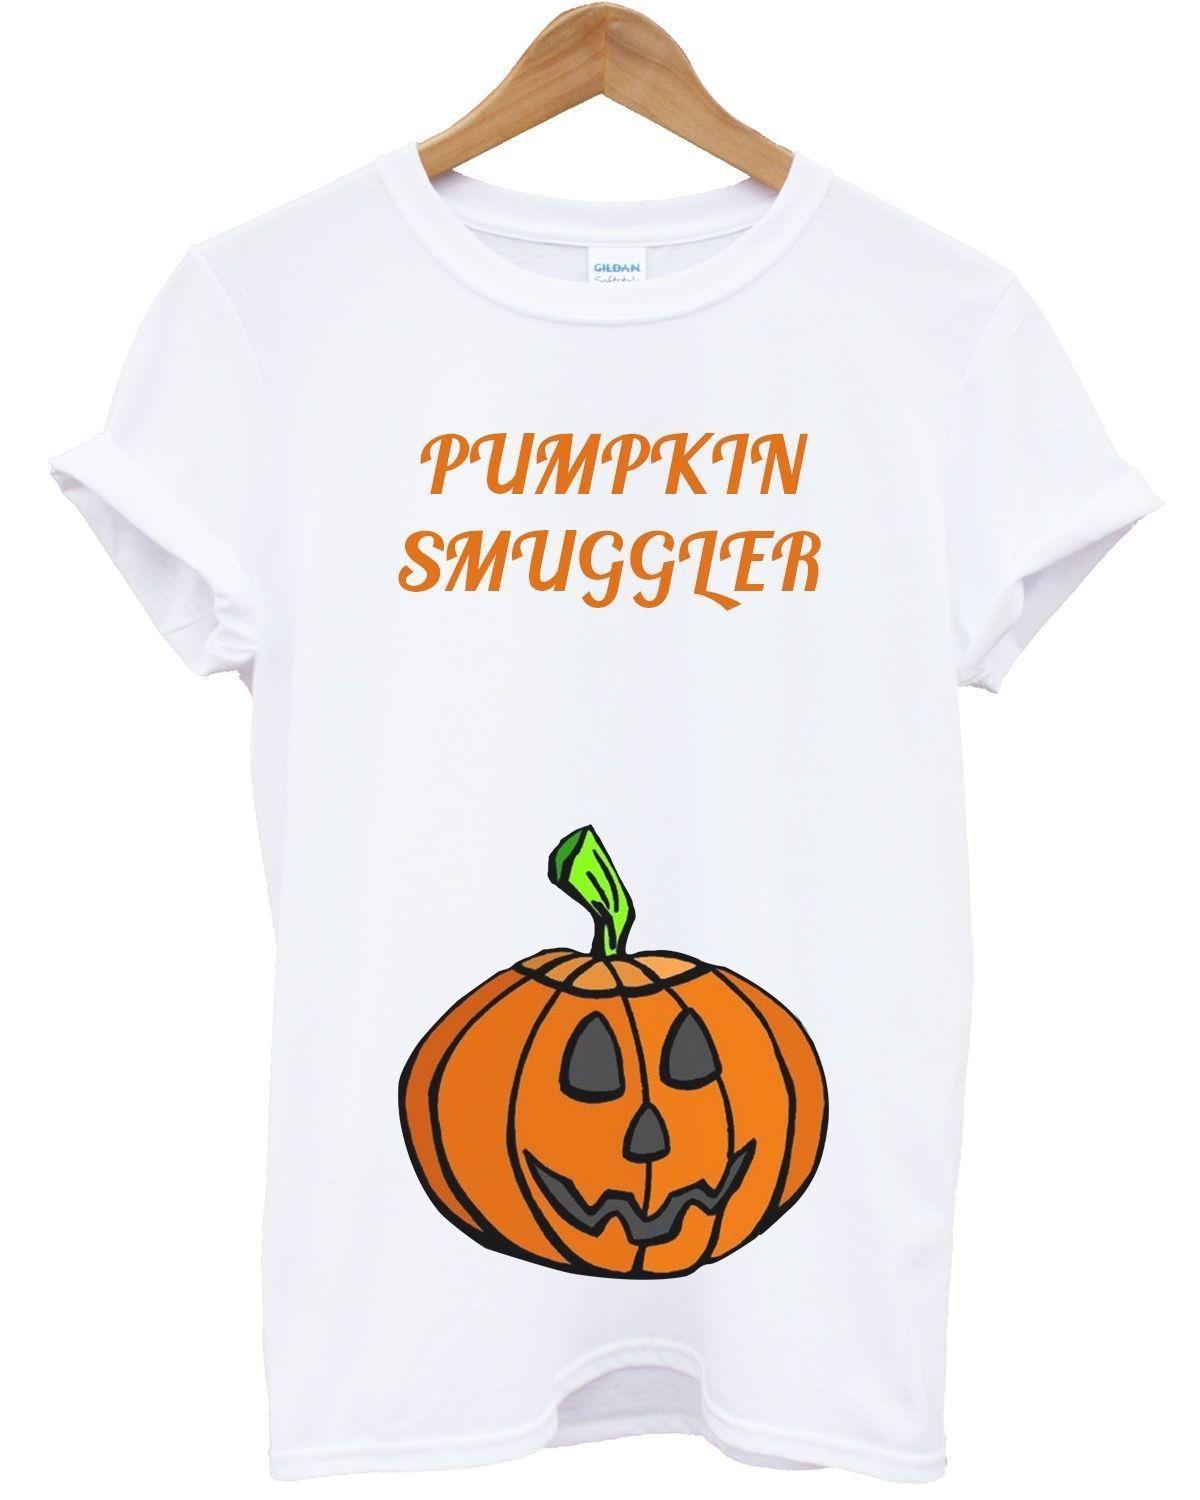 a2dfd41ae303e Pumpkin Smuggler T Shirt Halloween Pregnant Funny Baby Twins Outfit  CostumeMens 2018 Fashion Brand T Shirt O Neck 100% But T Shirts T Shirts  Funky From ...